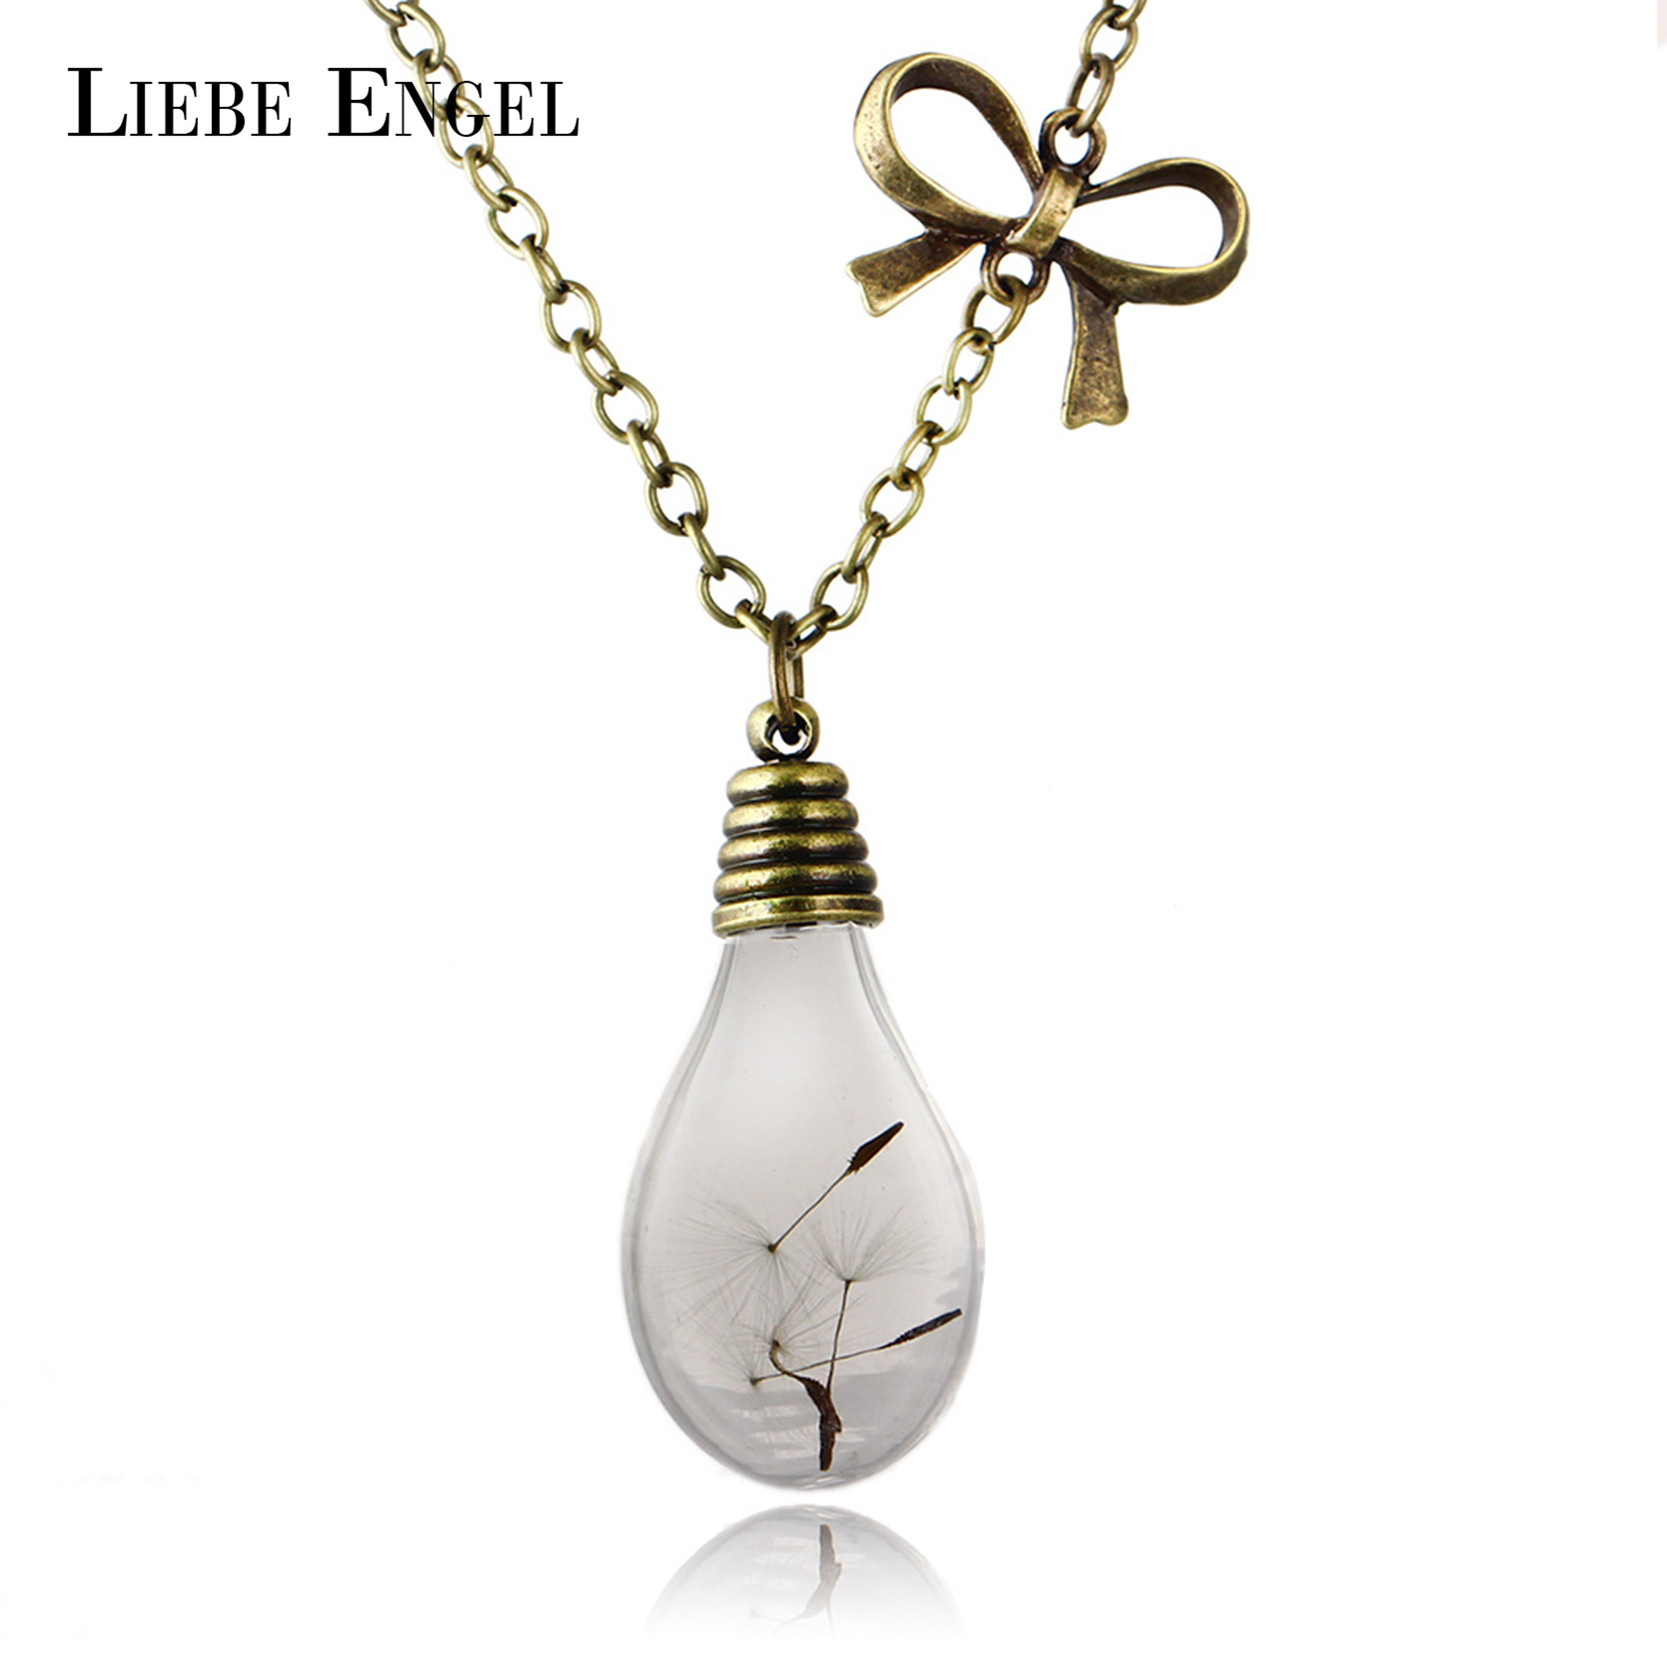 LIEBE ENGEL Hot Sale Glass Bulb Shaped Dandelion Gold Color Long Chain Necklace Dried Flower Statement Maxi Necklace for Women